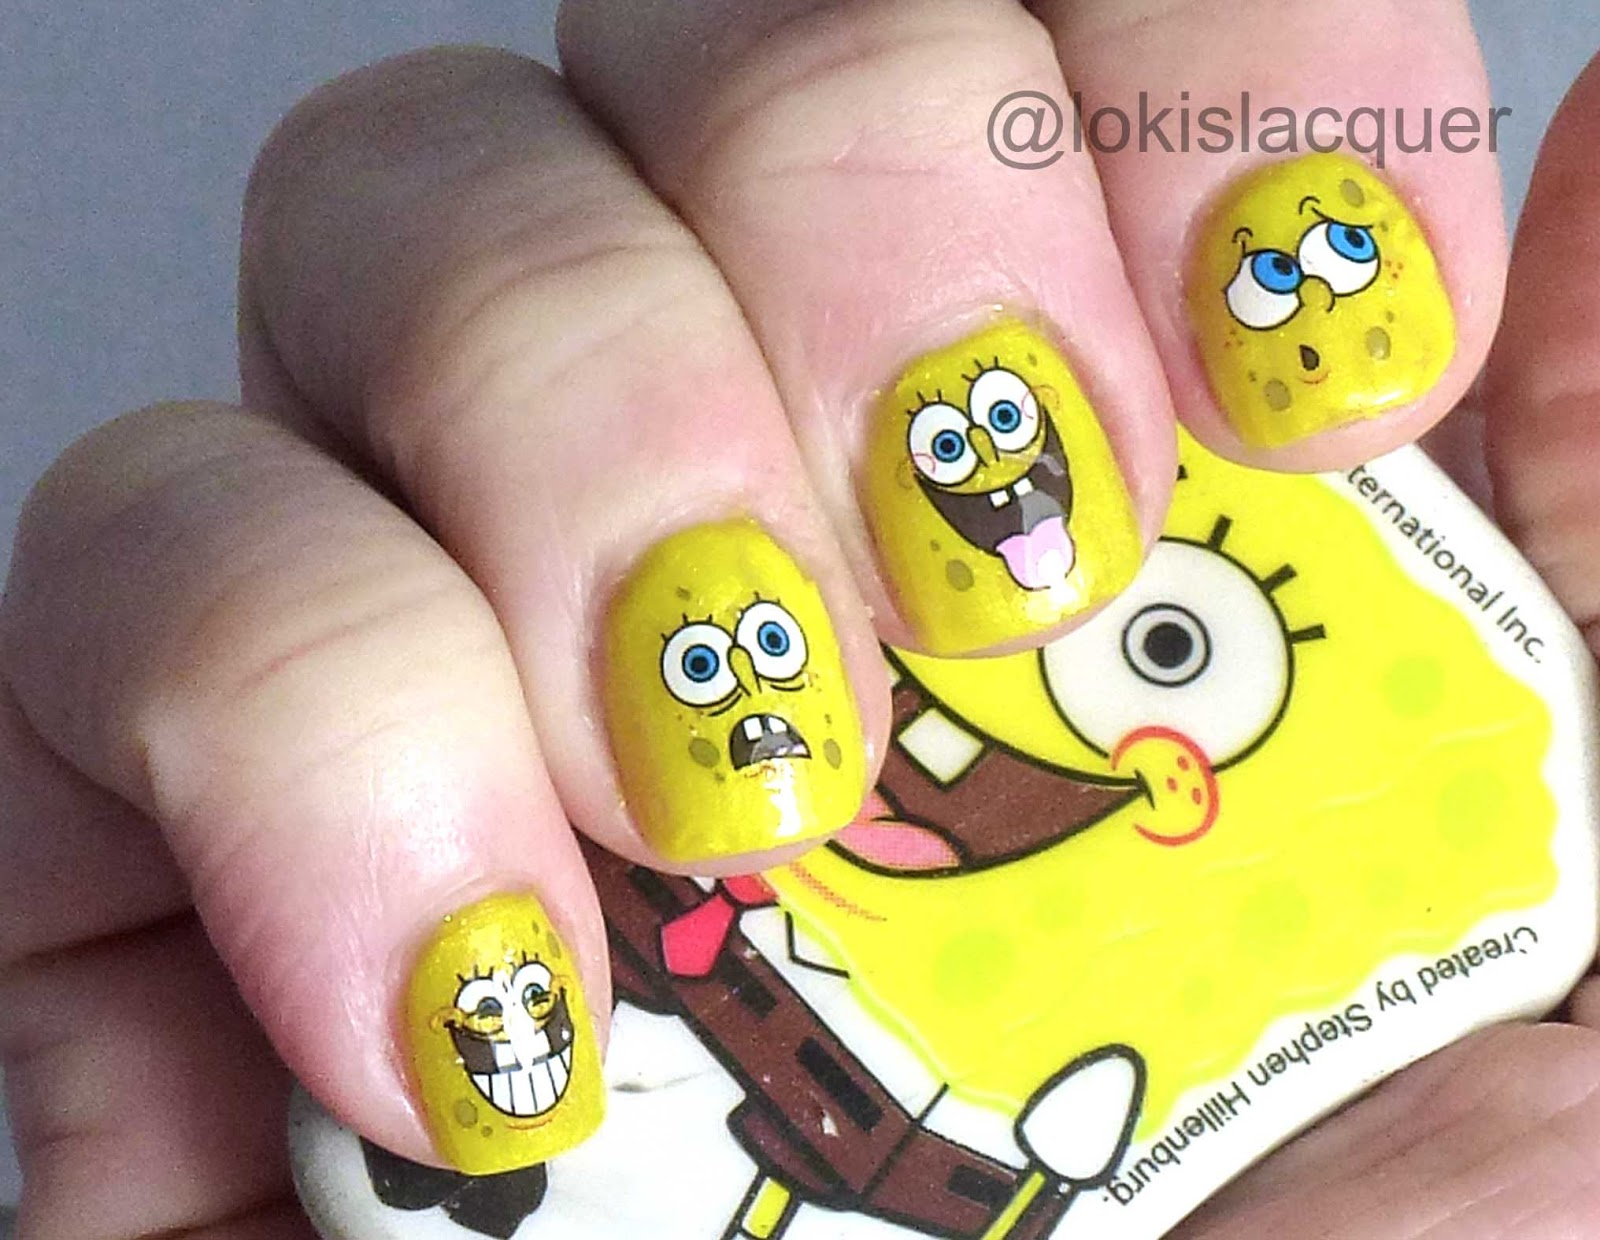 Lokis Lacquer Spongebob Nail Decals From Born Pretty Store Review - Spongebob nail decals